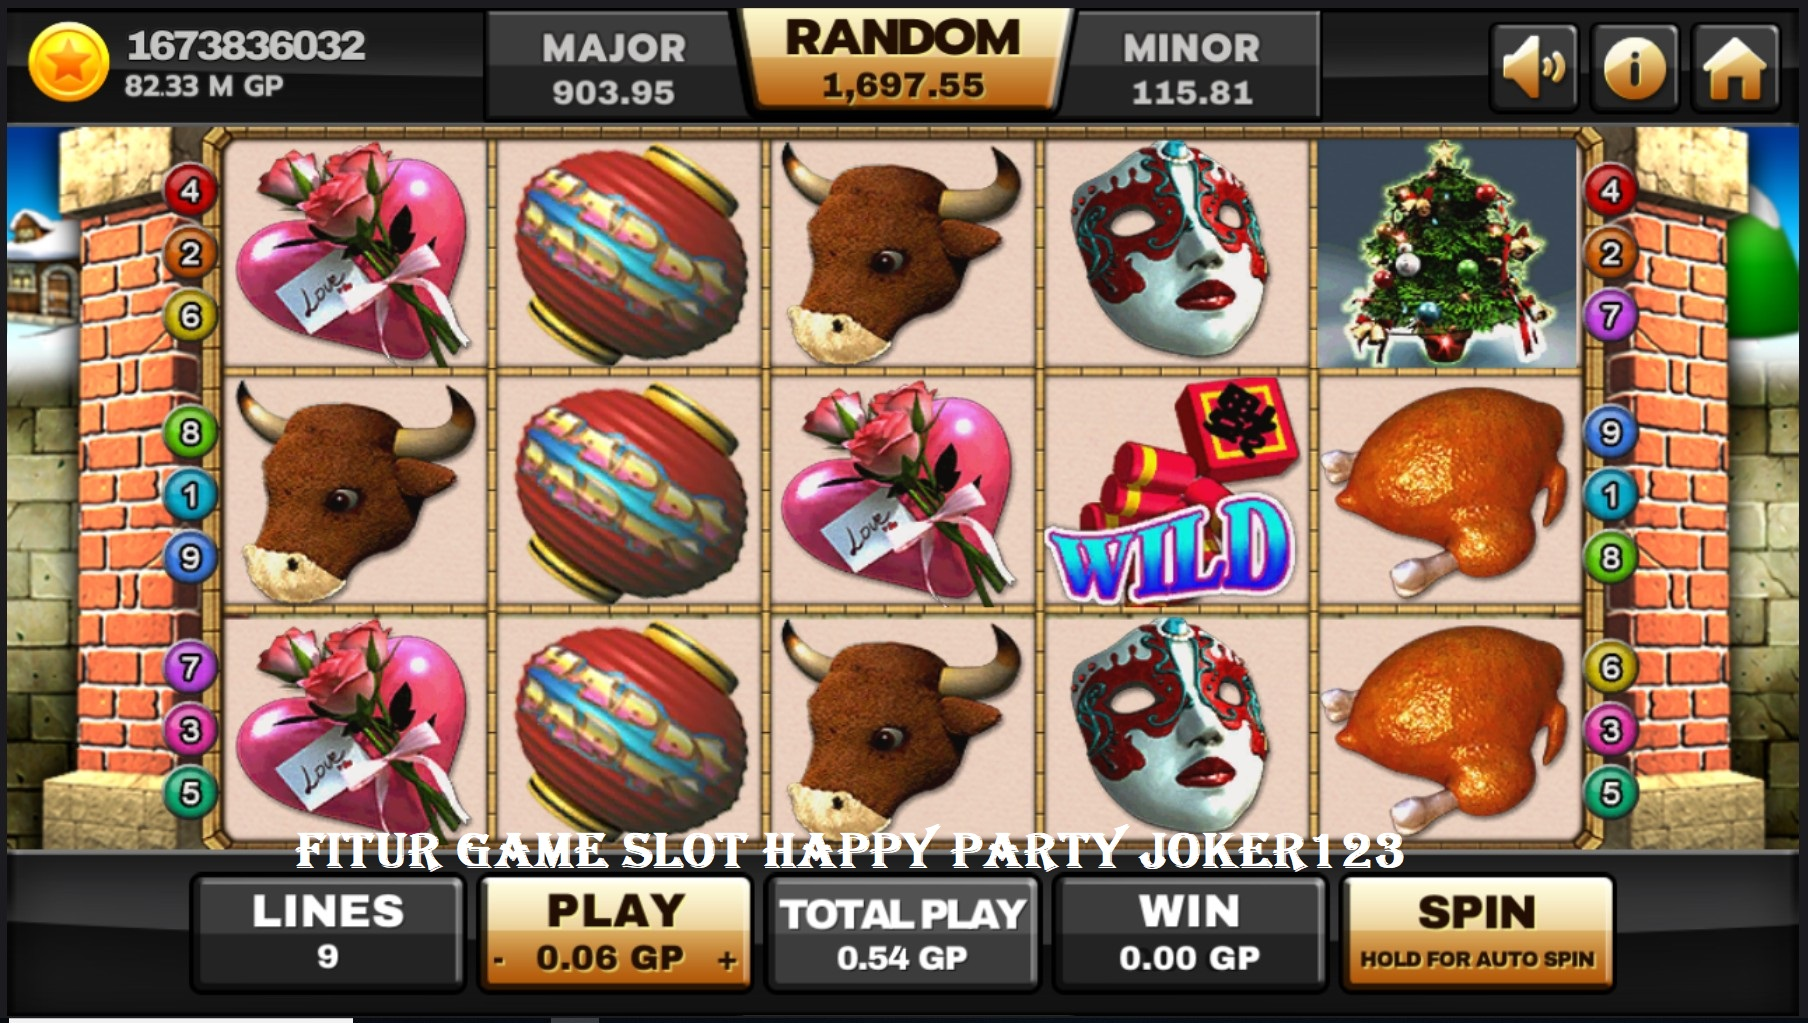 Fitur Game Slot Happy Party Joker123